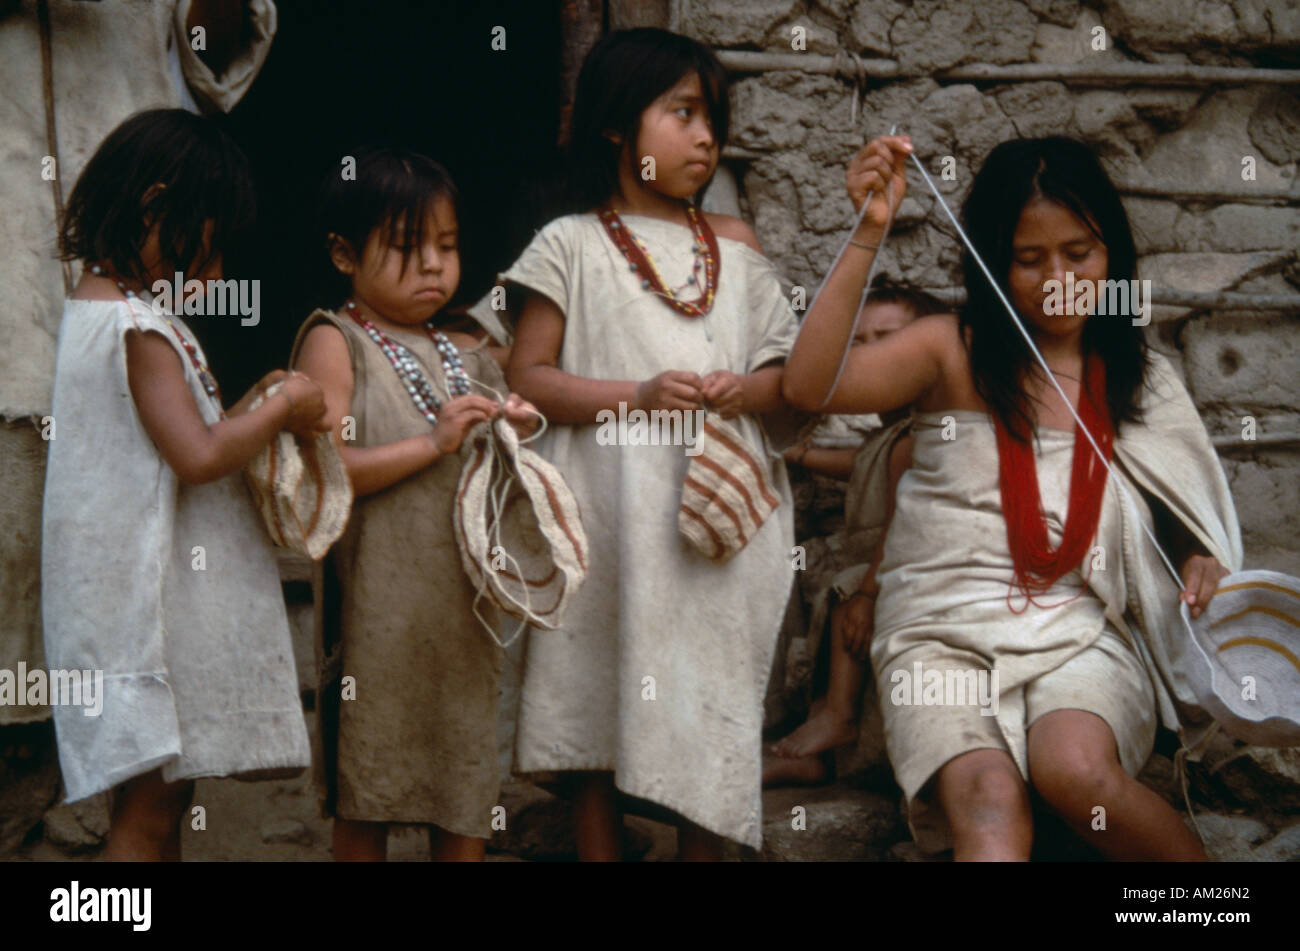 """the role of women in the colombian kogi tribe The kogi represent the most complete surviving civilization of pre-colombian america they are not hunter-gatherers or a wondering tribe they are a nation whose fields have been continuously cultivated for more than a thousand years the kogi believe they are the """"elder brothers,"""" the guardians of life on earth."""